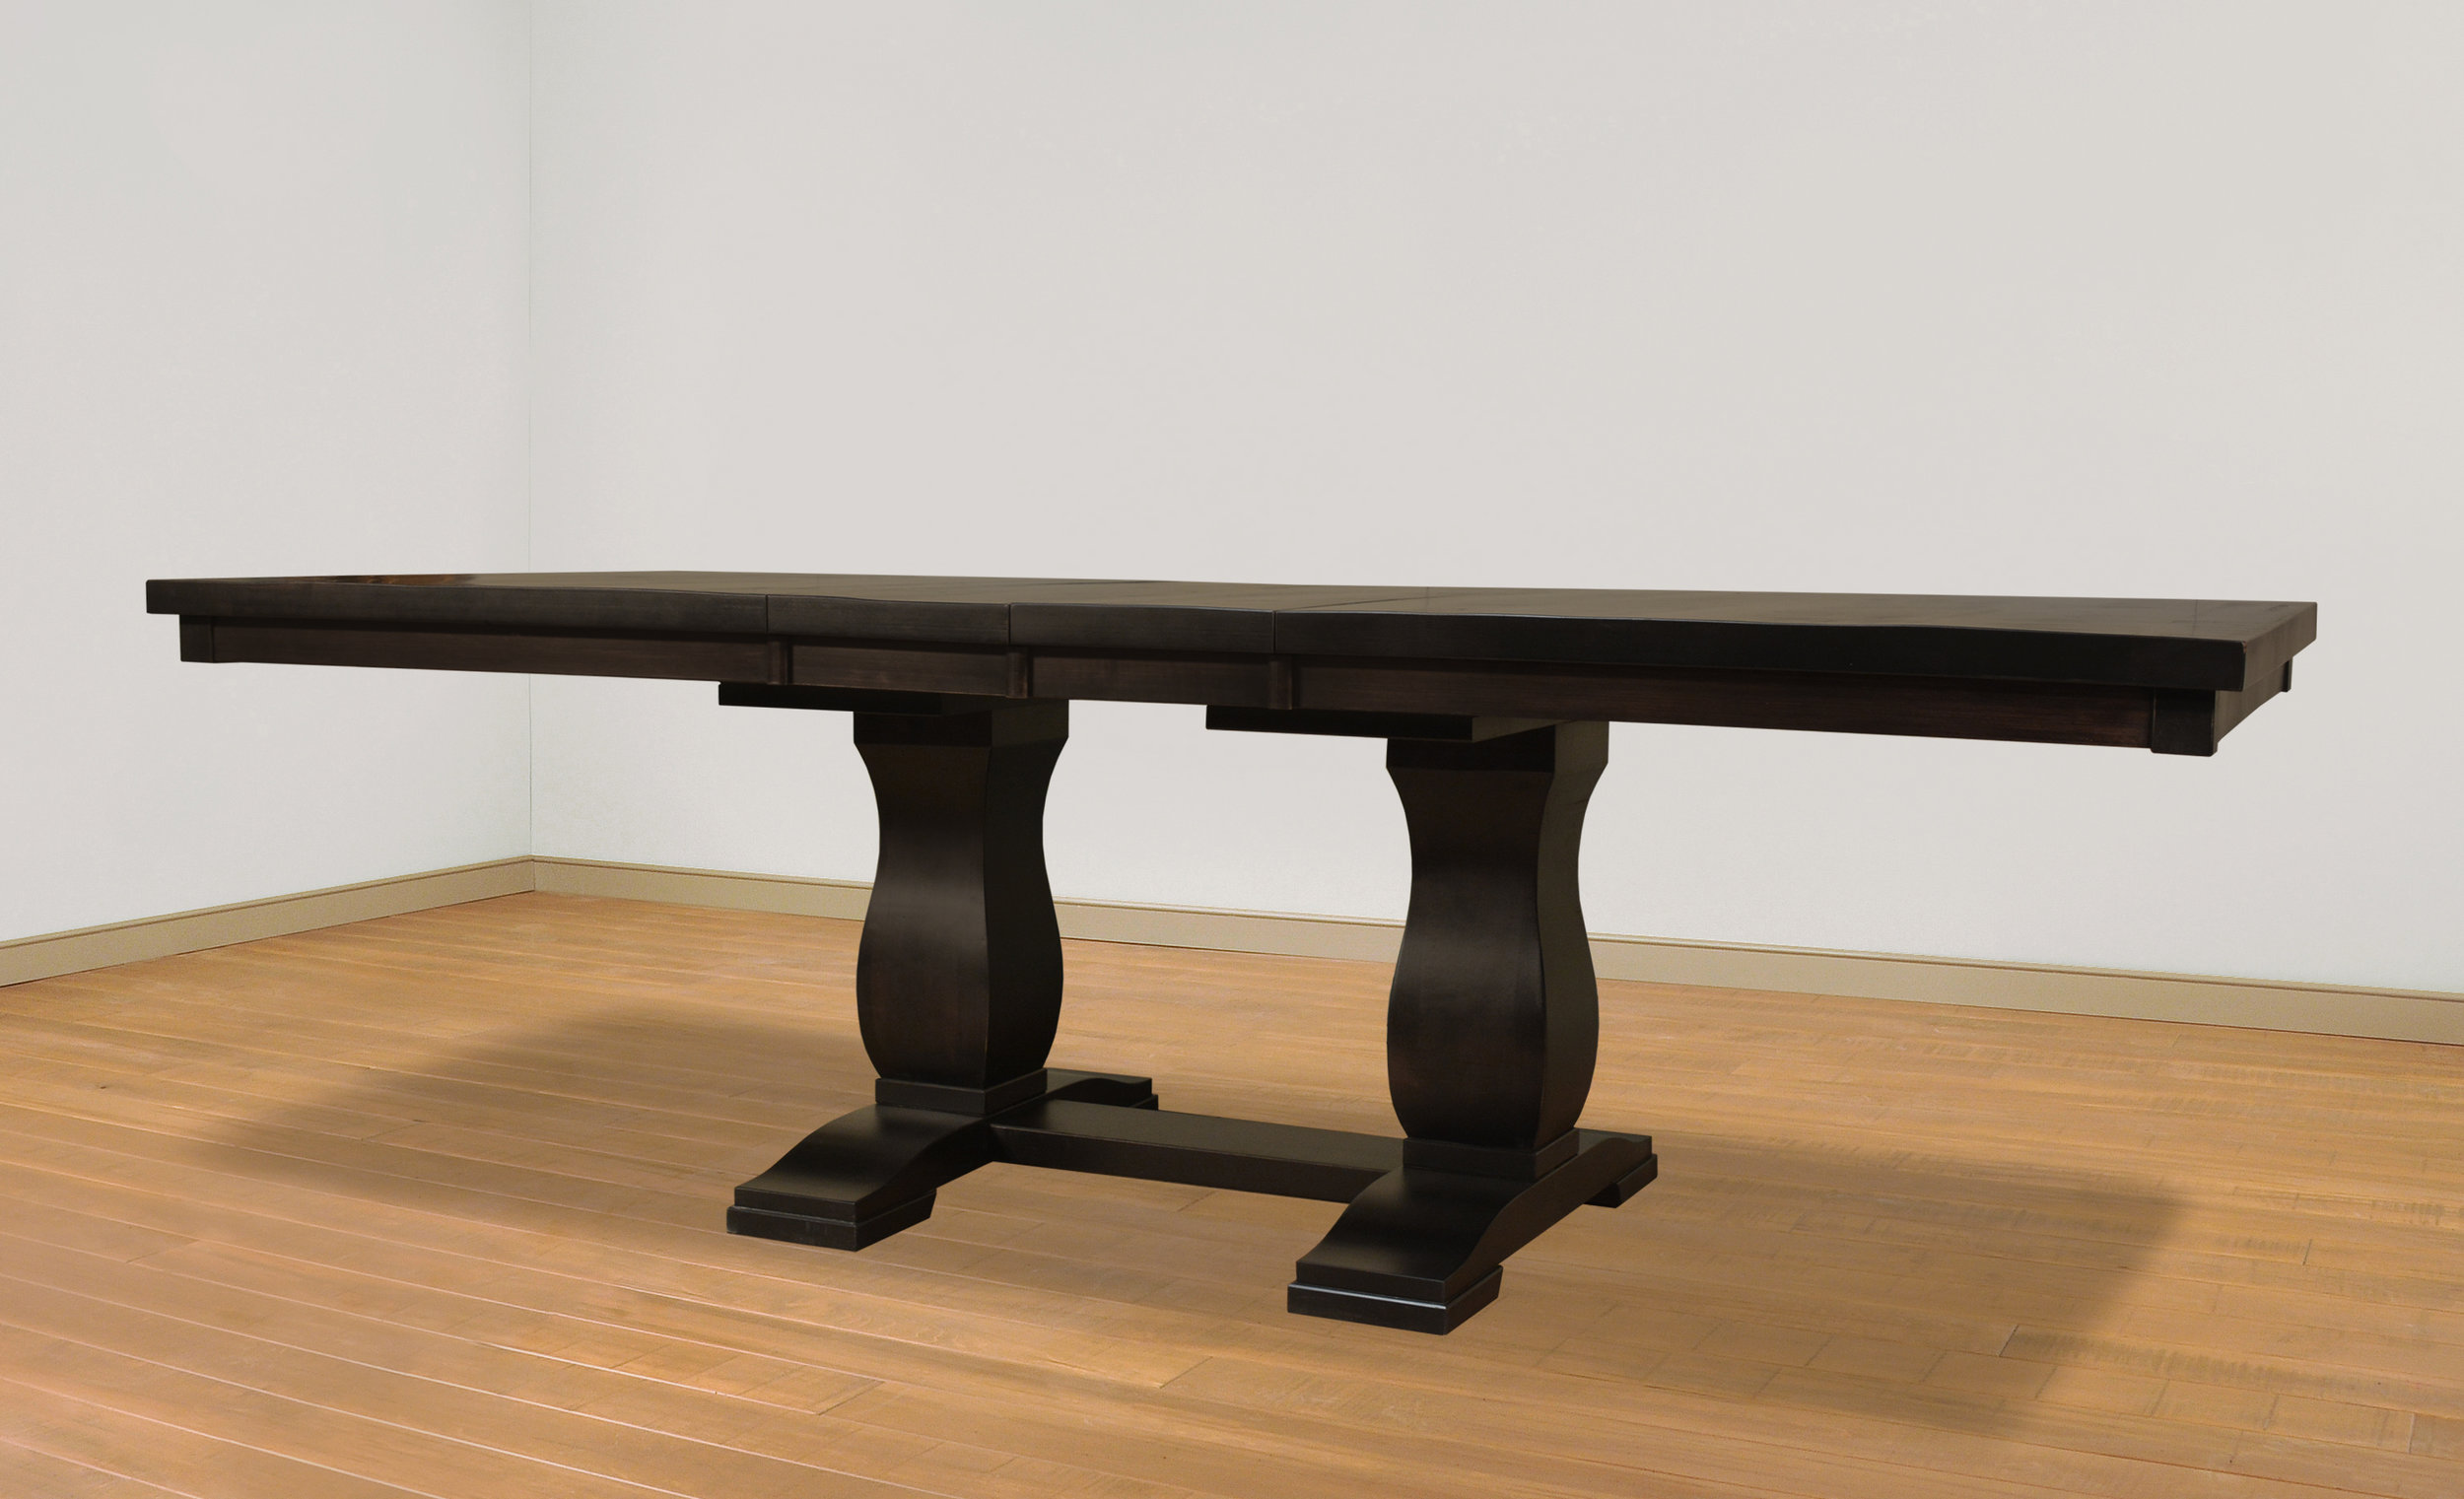 Tuscan tables for sale in Ohio